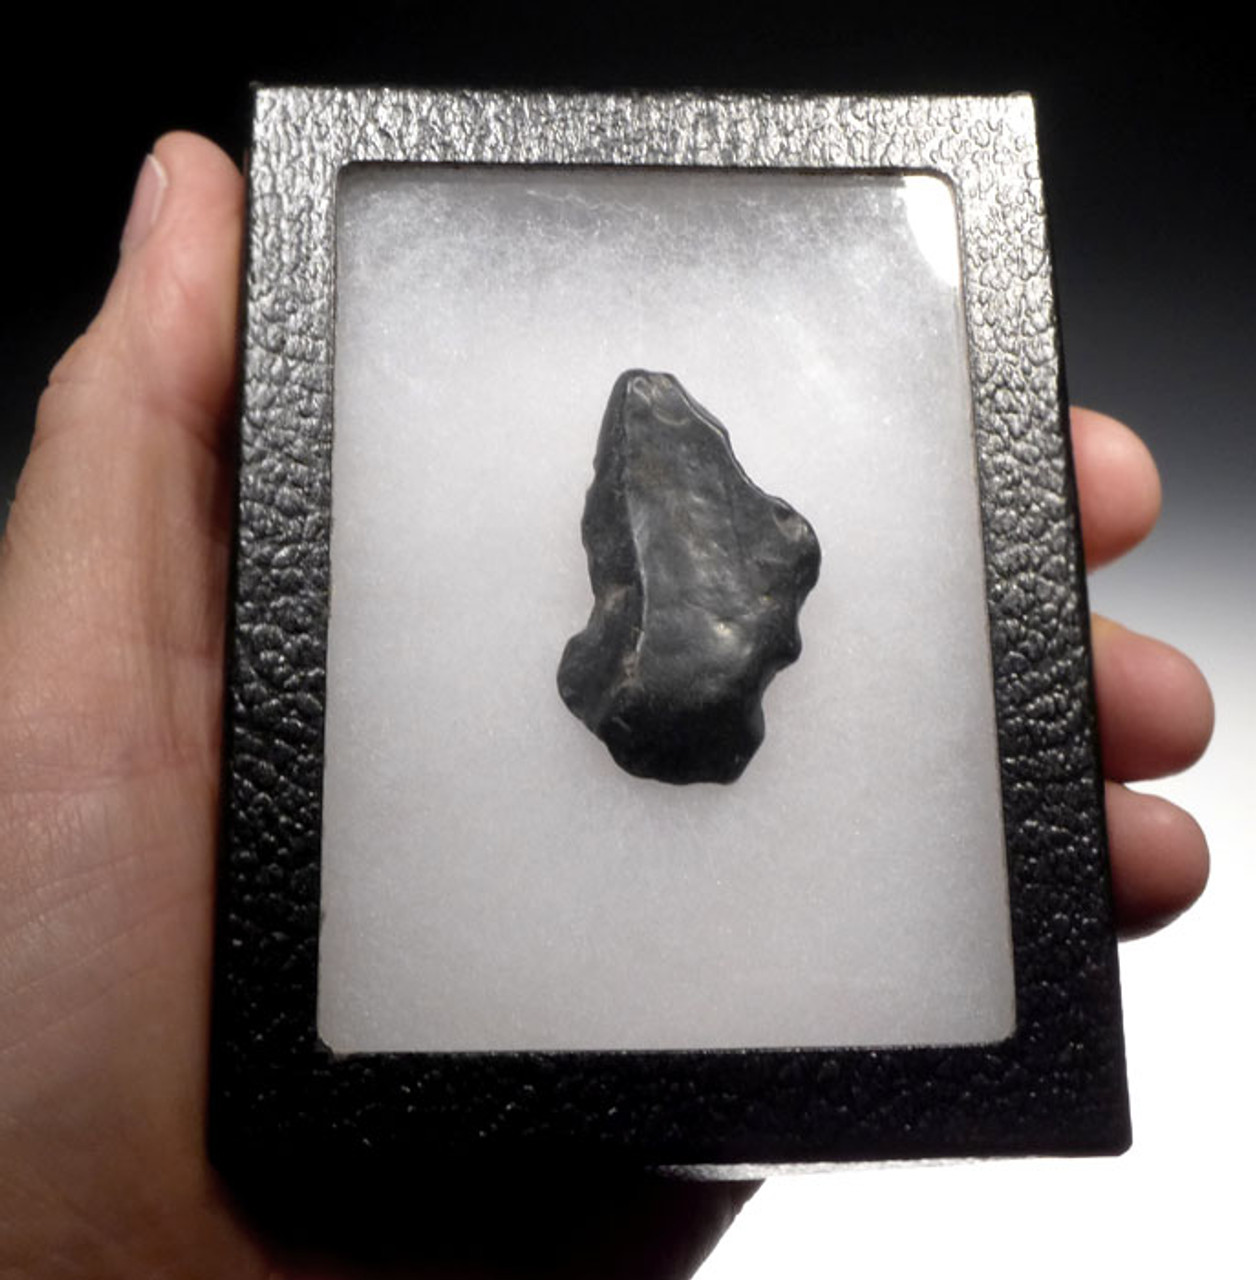 CLACTONIAN FLAKE SCRAPER MADE BY HOMO ERECTUS *CL003